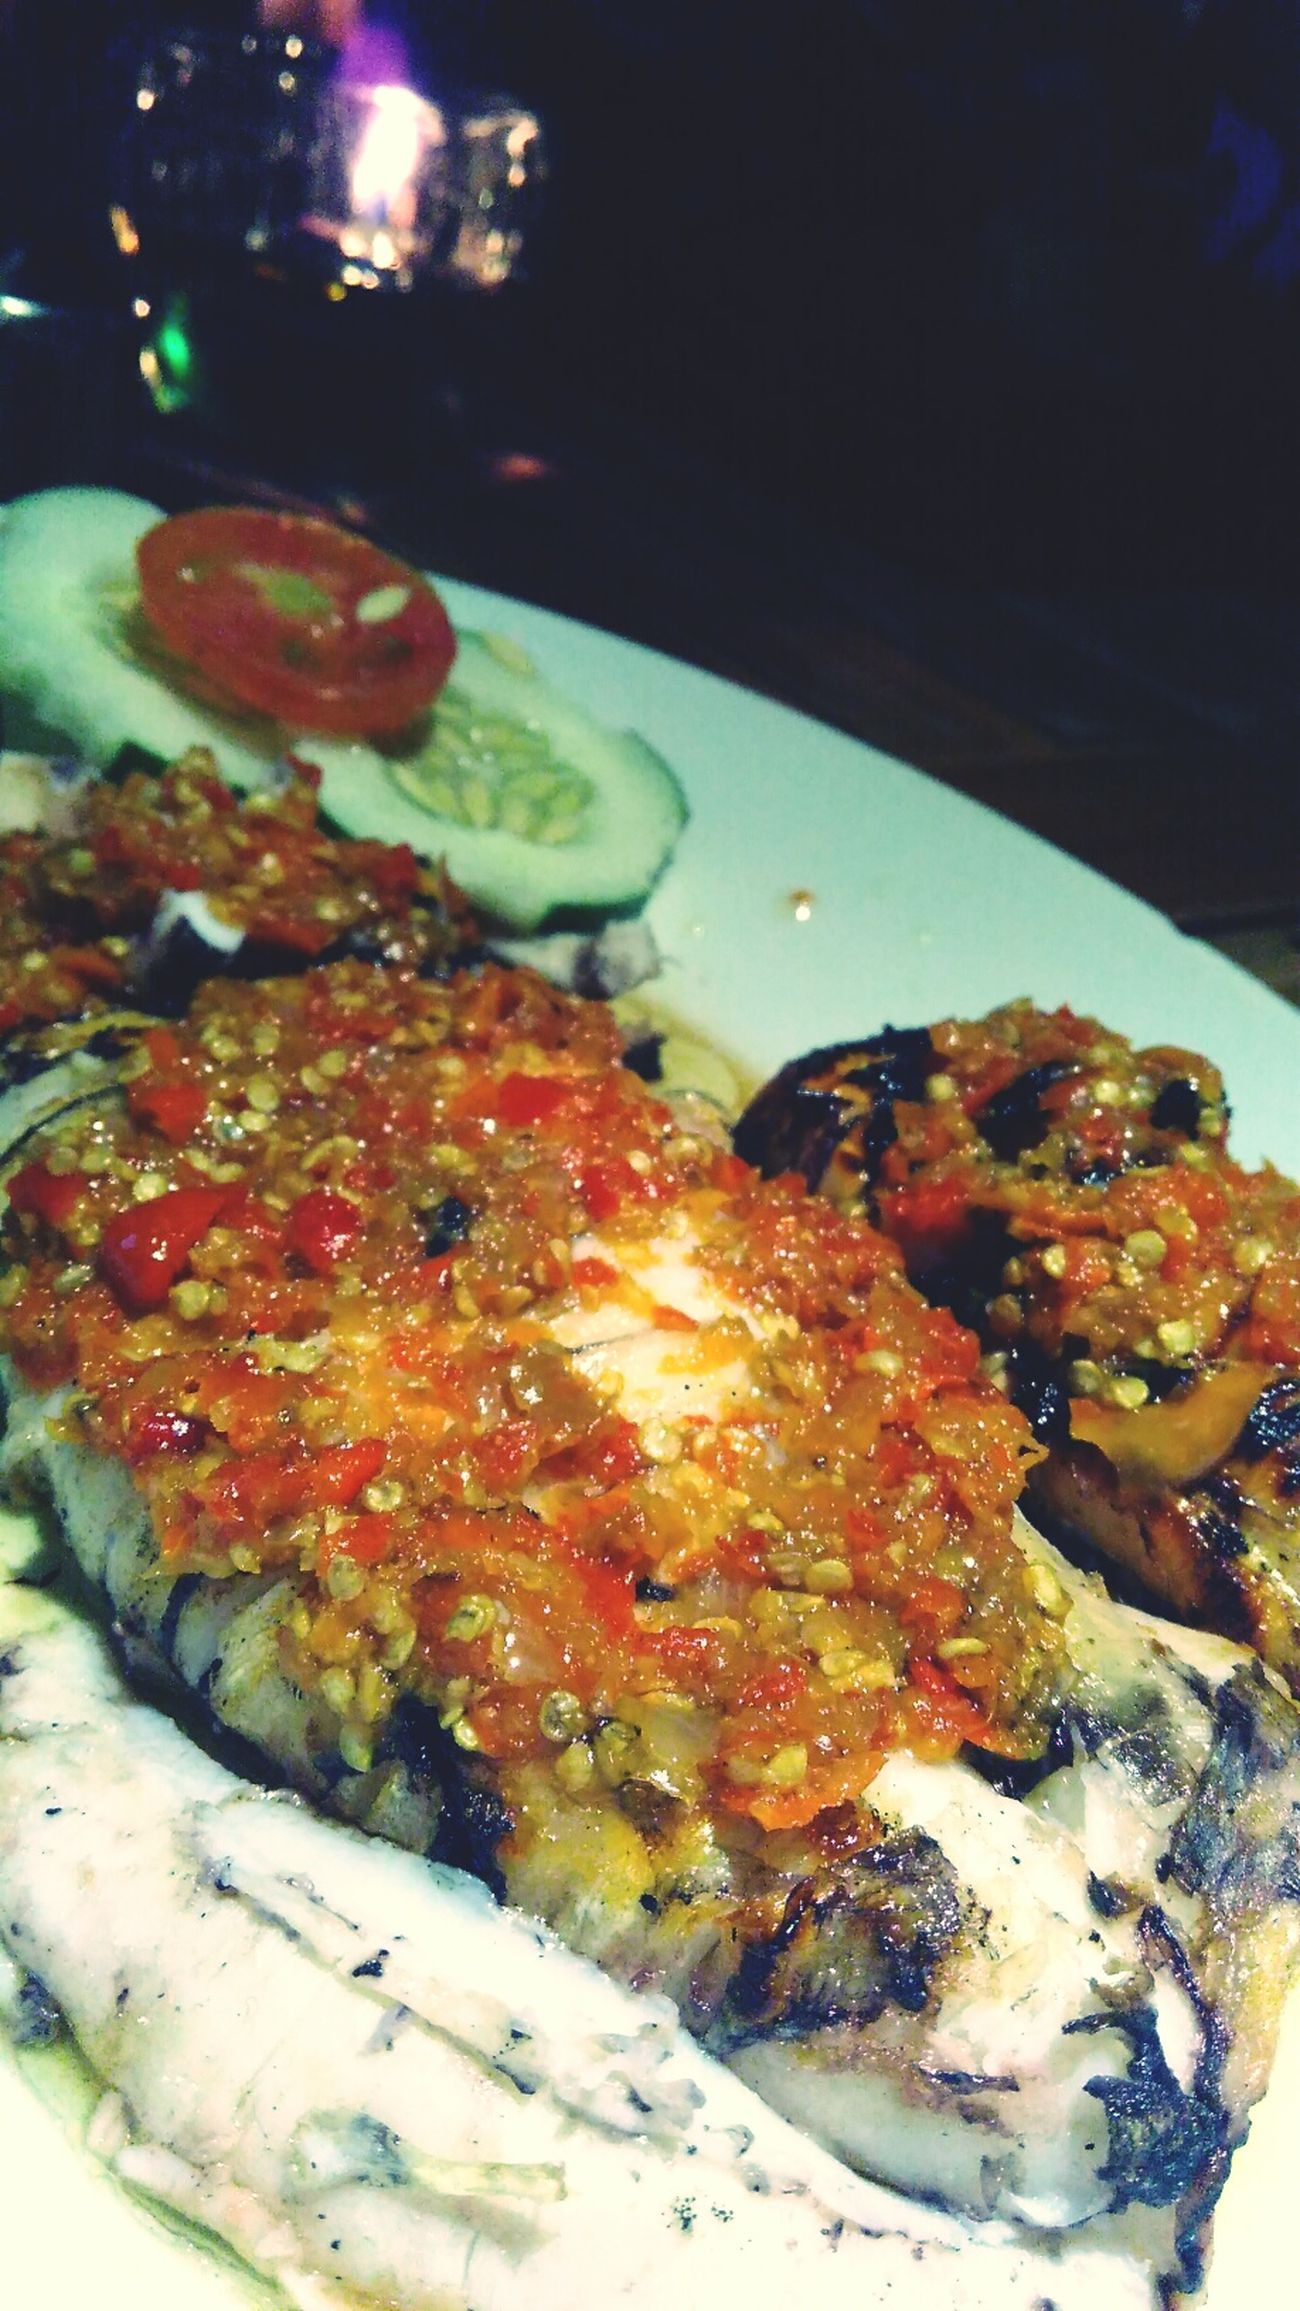 Dinner Indonesianculinary Wonderful Indonesia Northsulawesi Cumi Bakar Rica Food